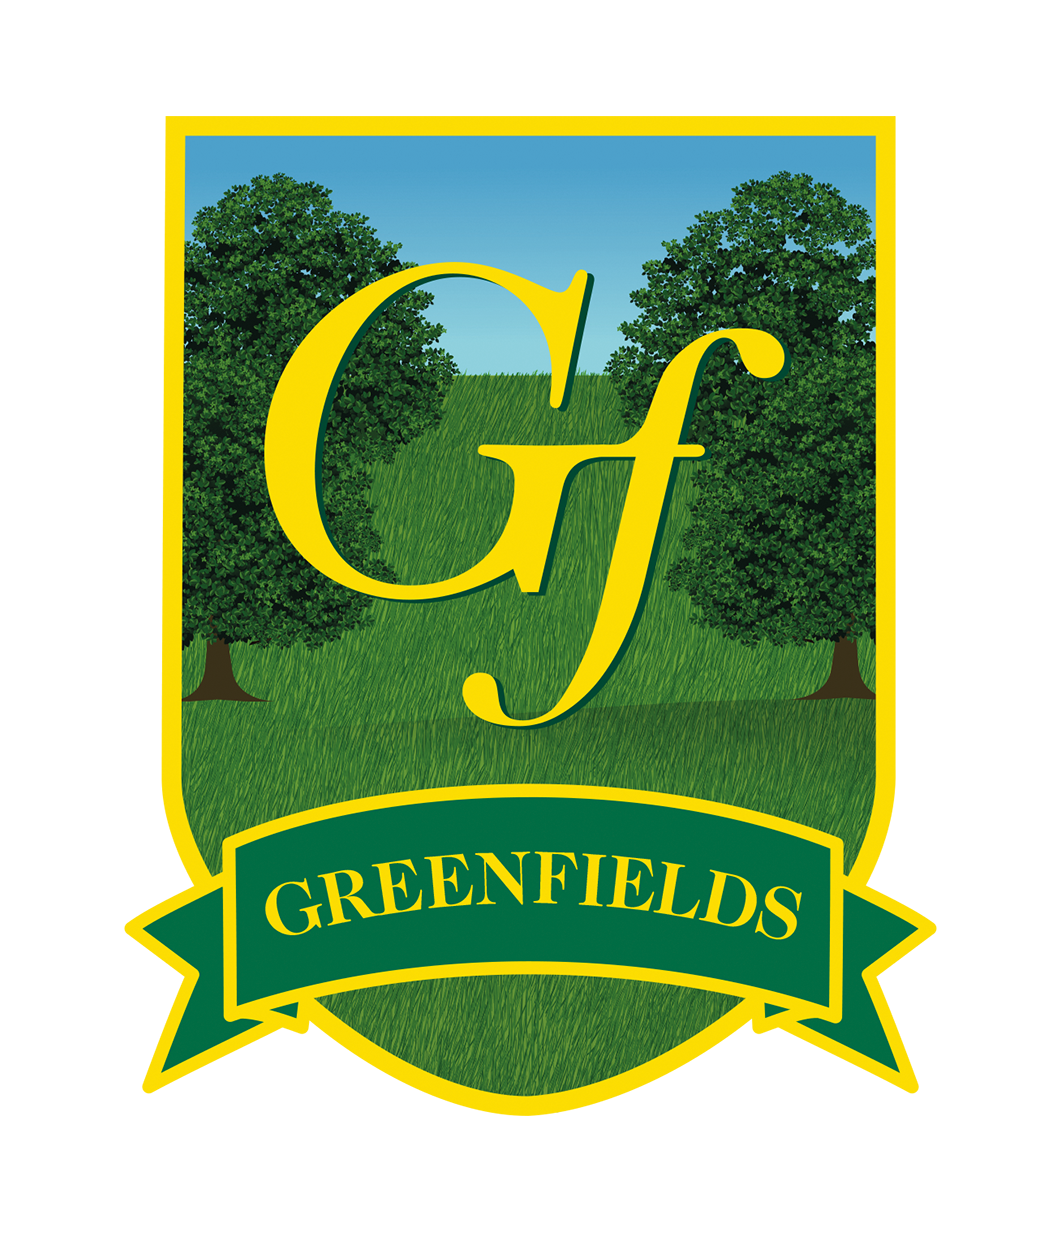 English Language Courses, Greenfields School, Sussex, England